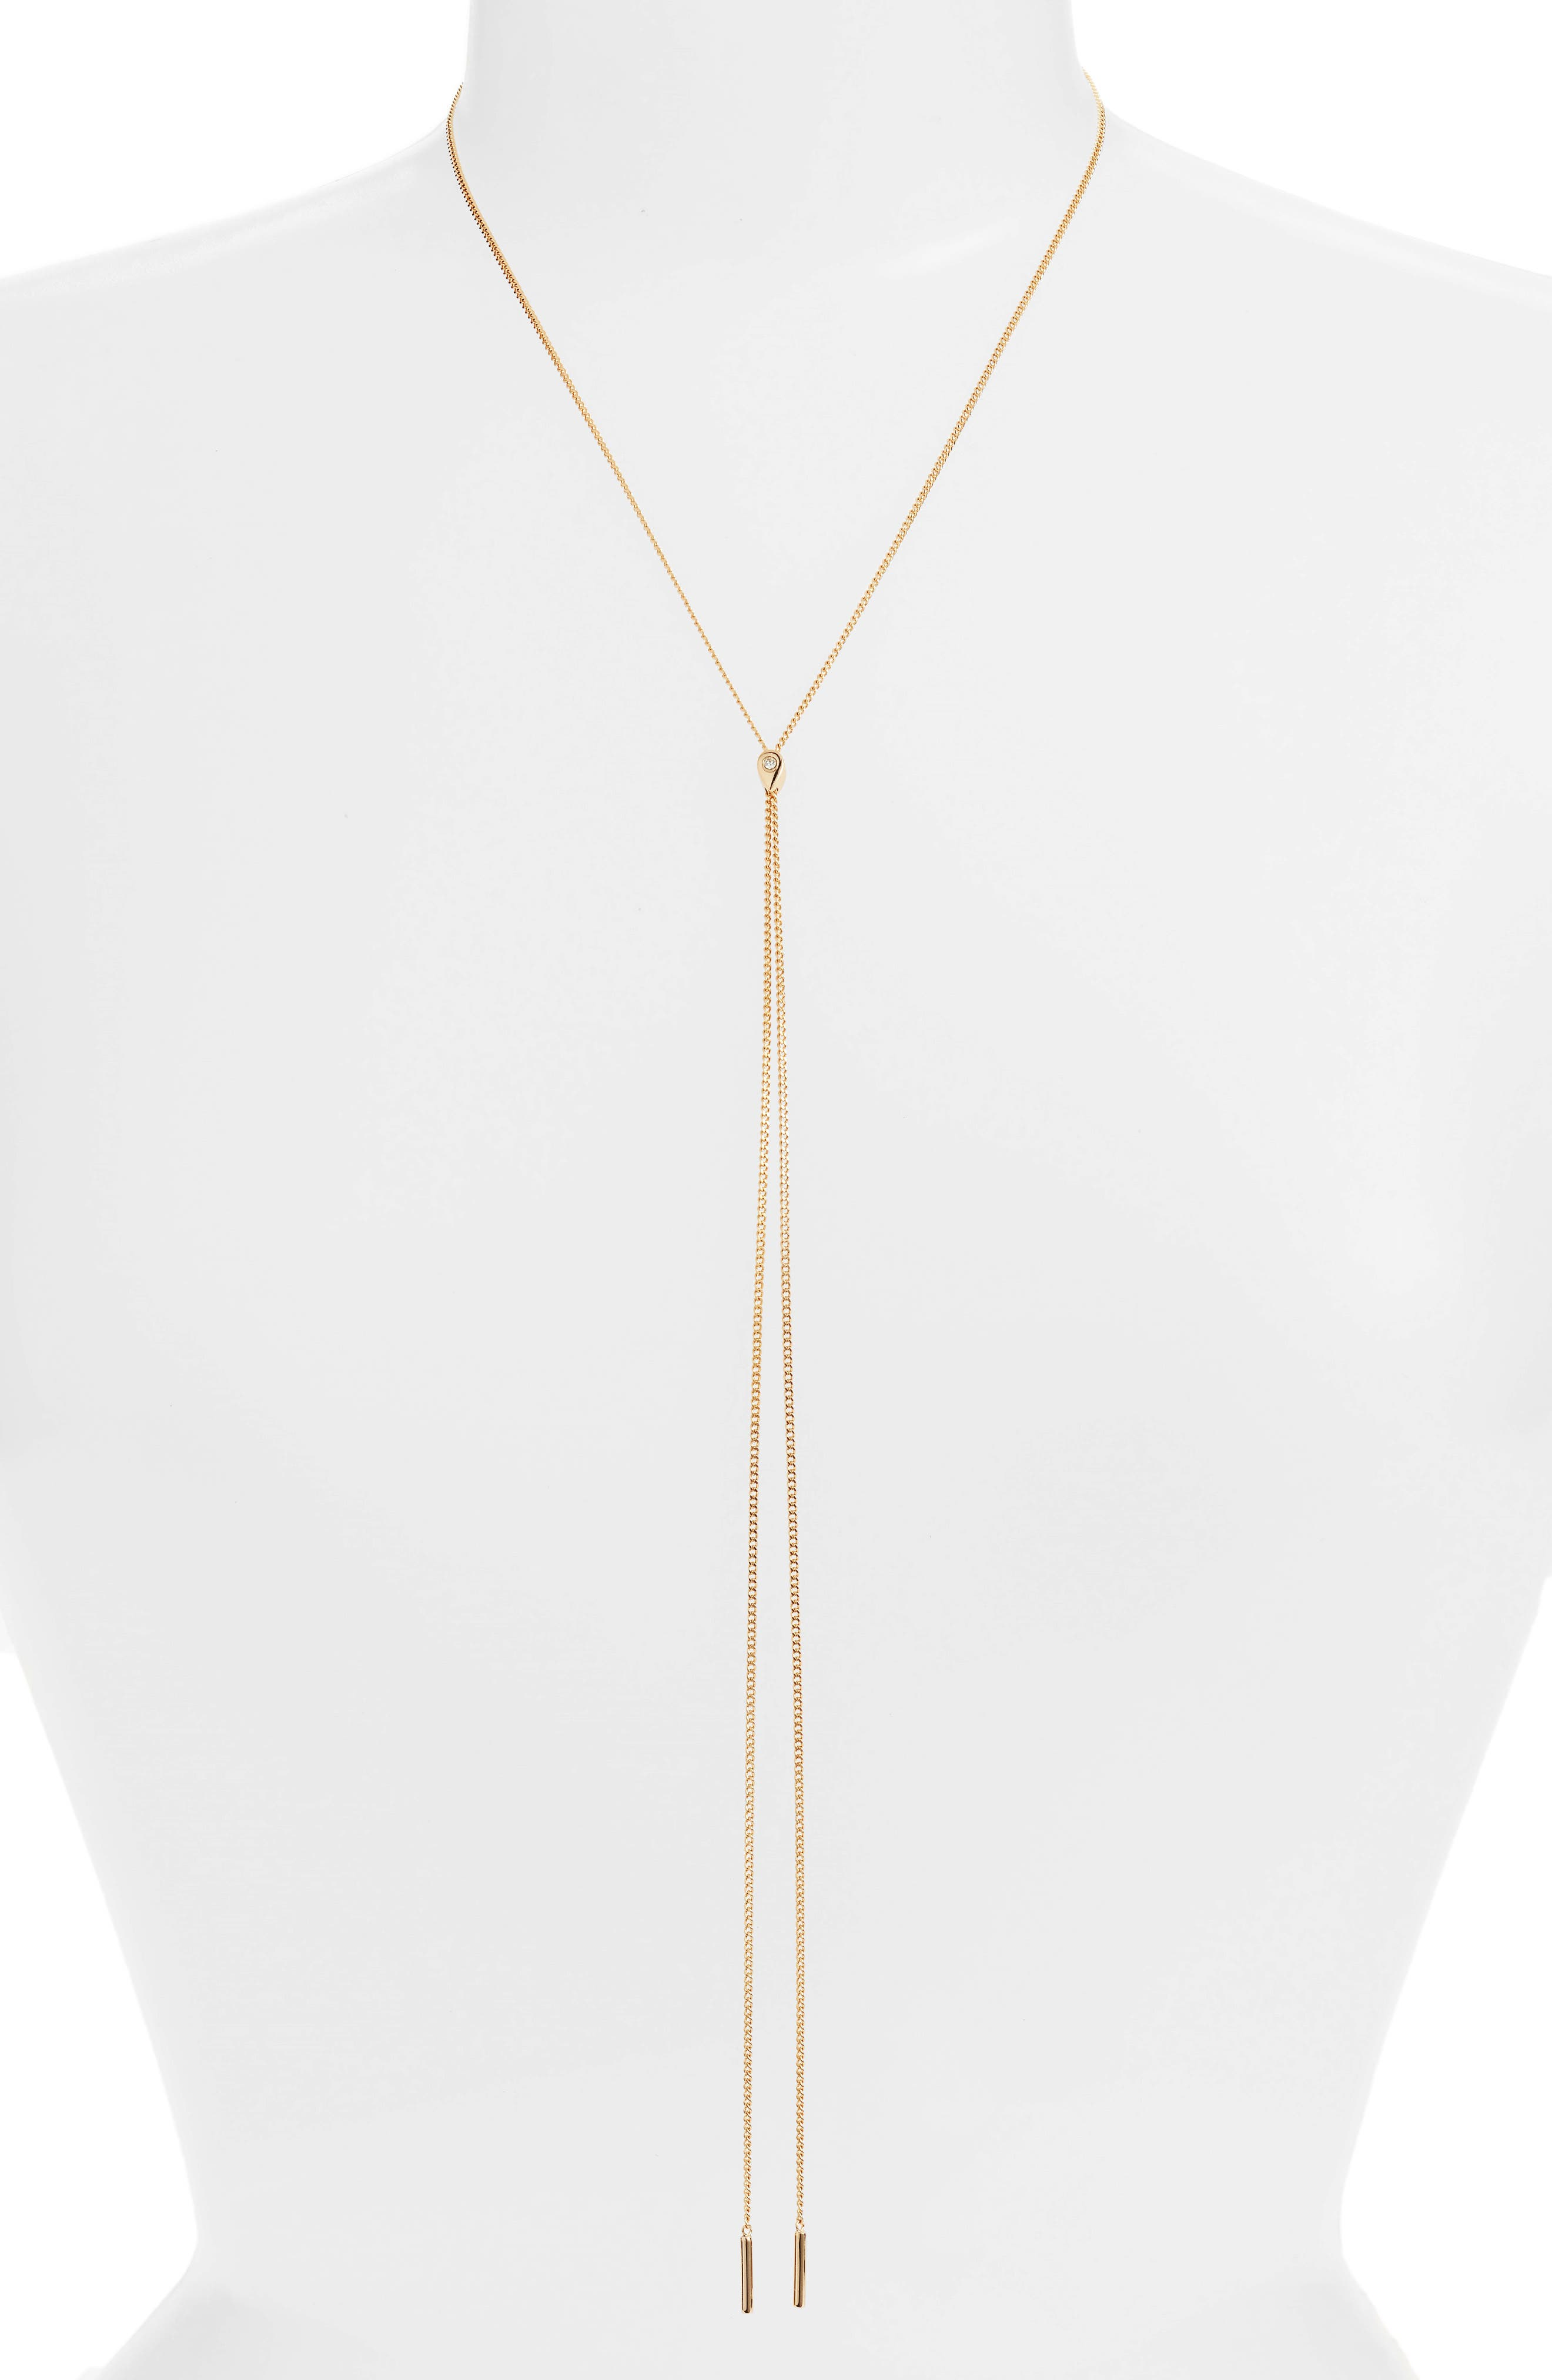 Jules Smith Teardrop Charm Necklace